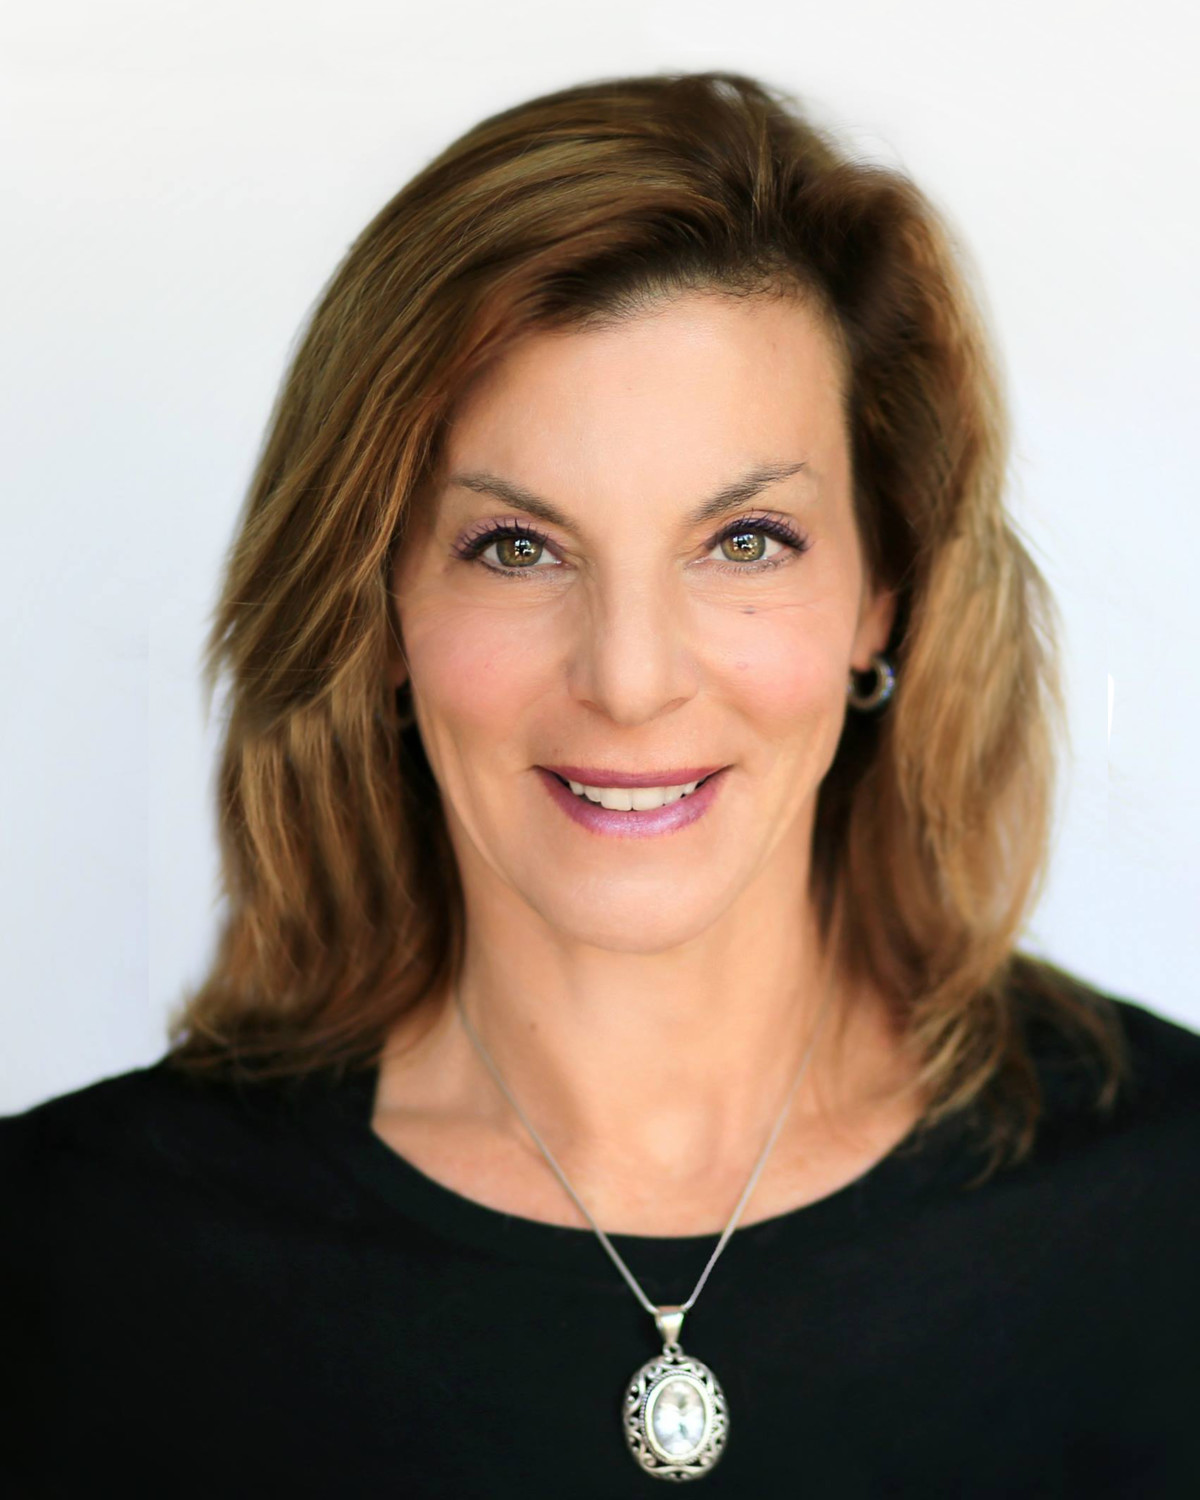 Eileen Taggart, Luxury Real Estate Agent